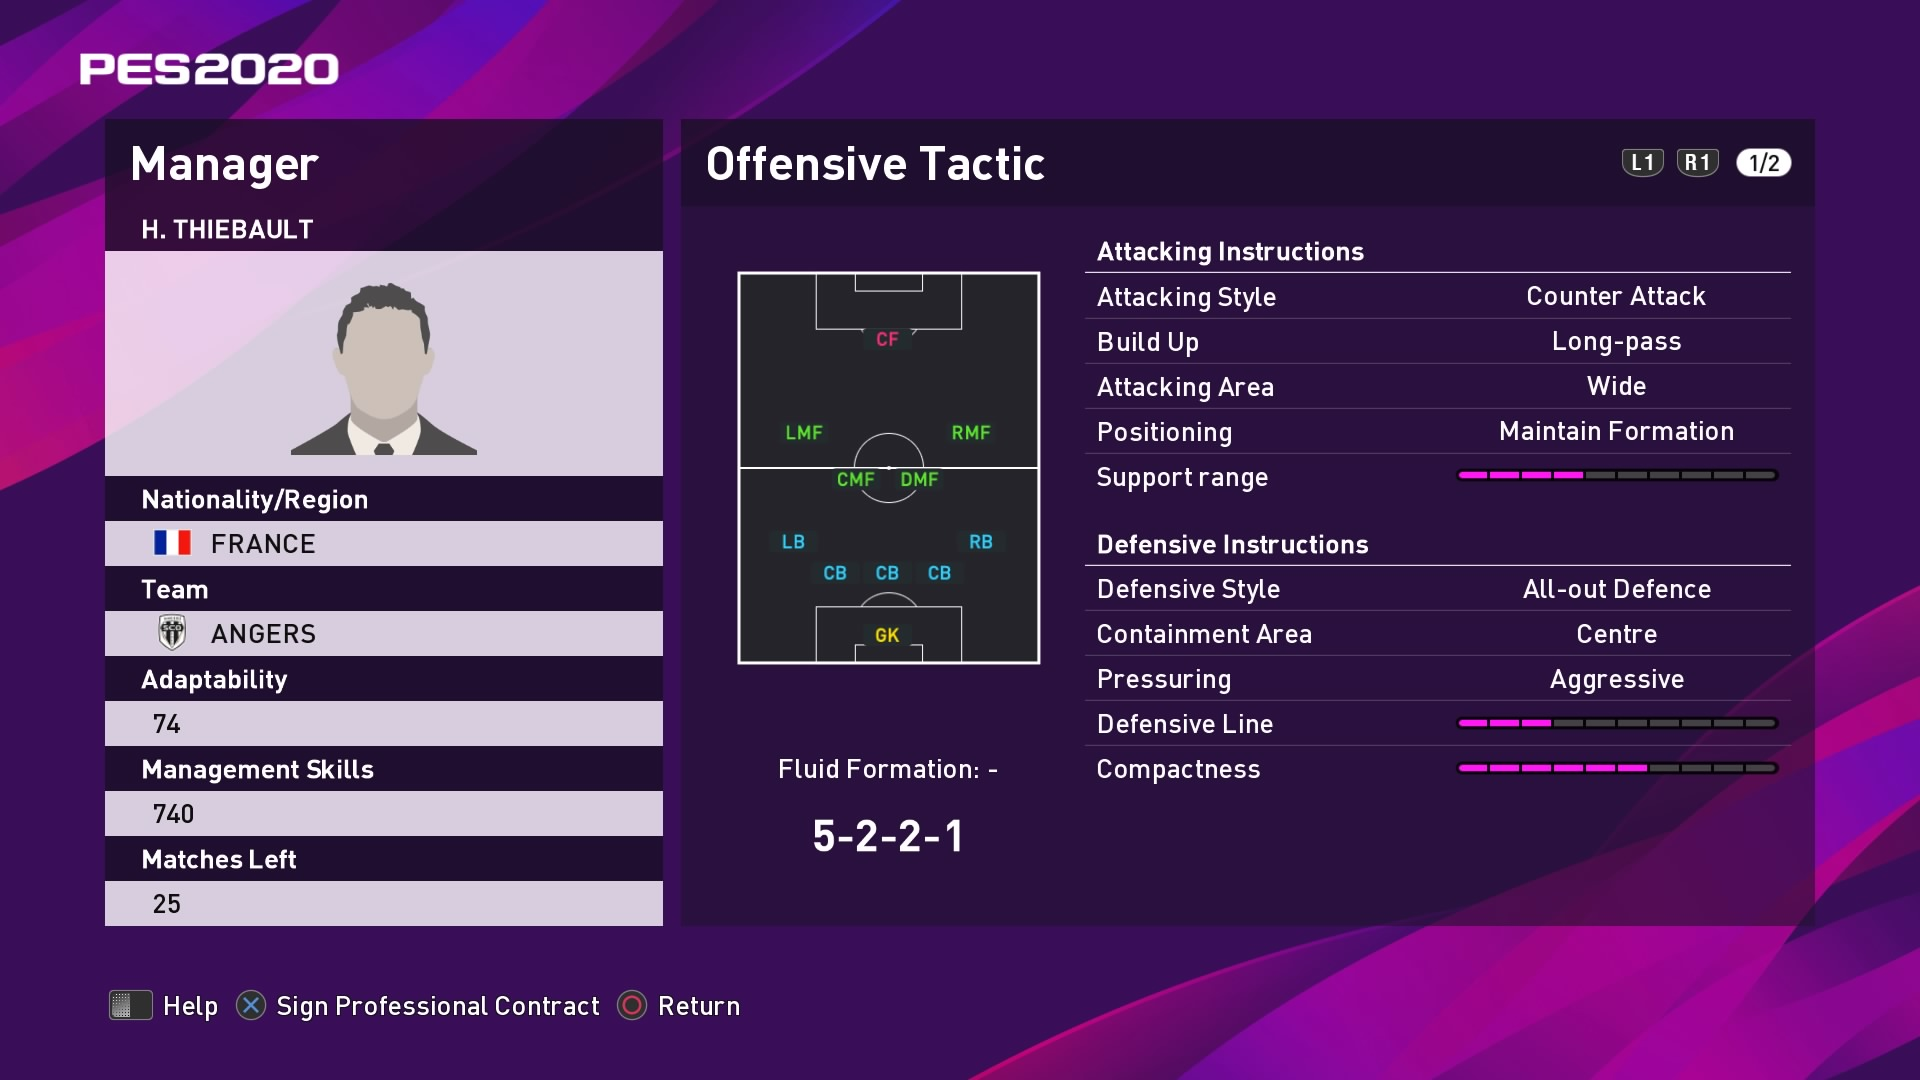 H. Thiebault (Stéphane Moulin ) Offensive Tactic in PES 2020 myClub